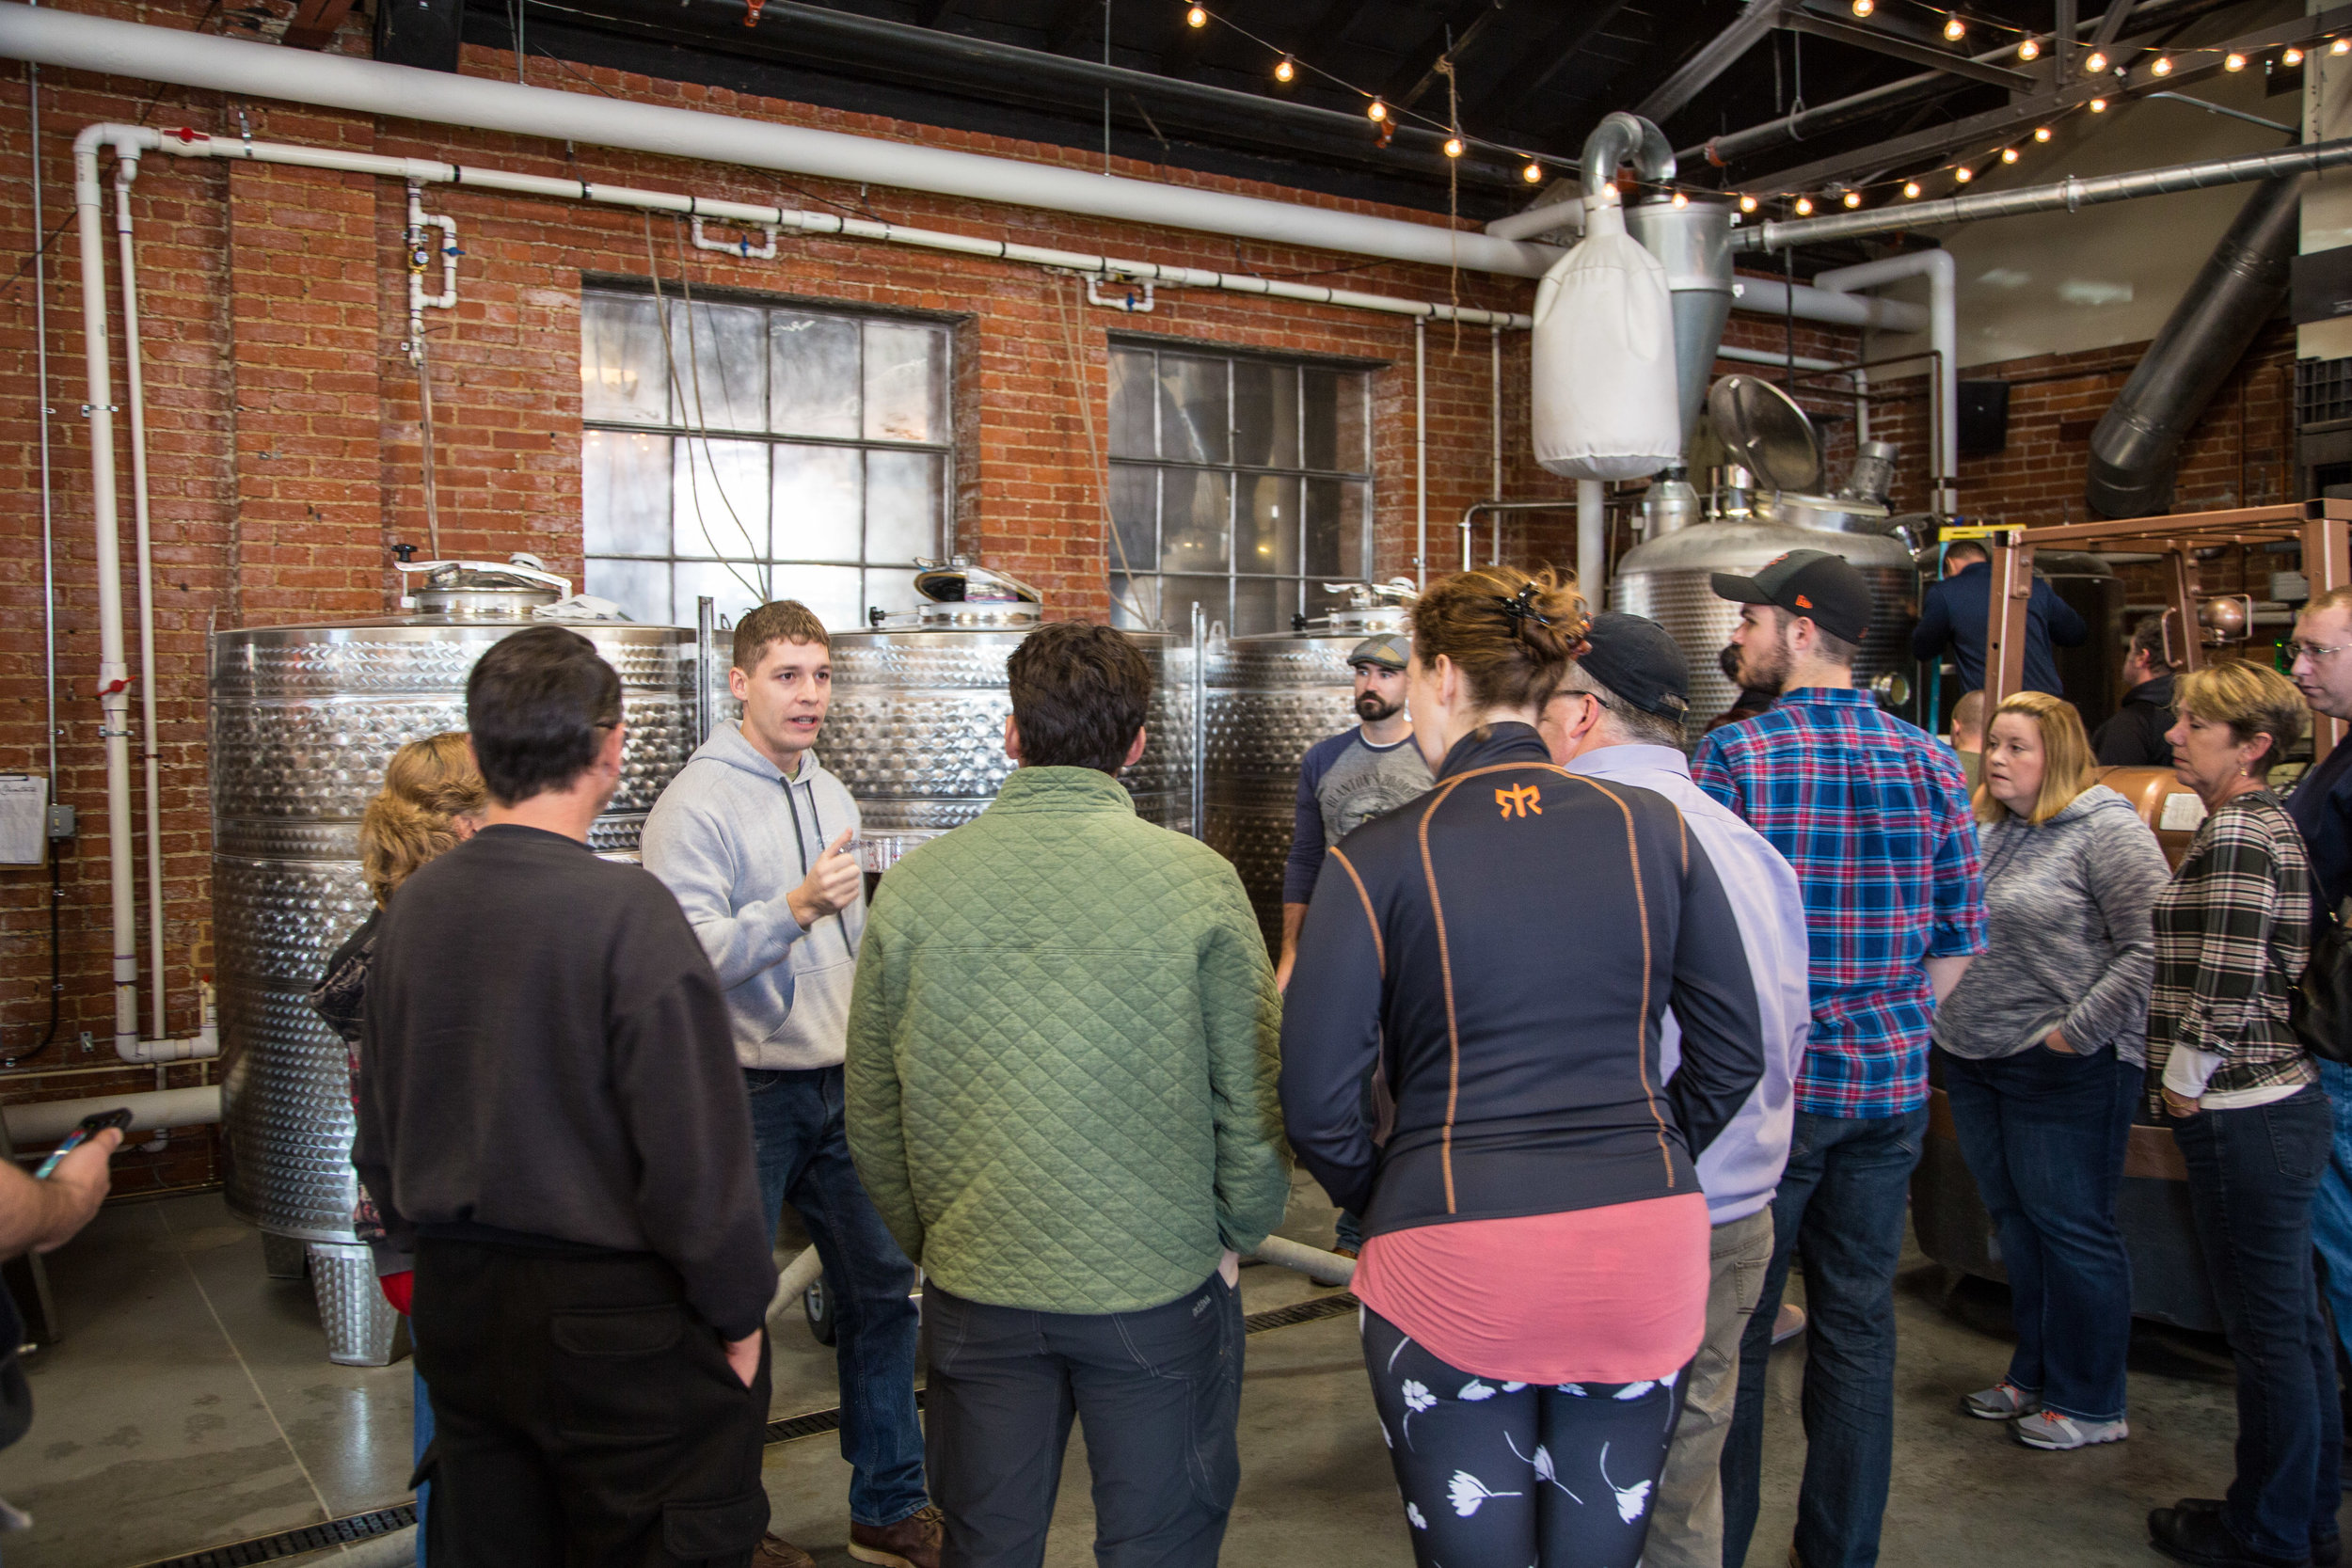 Get hands on distilling experience with the head distillers at McClintock Distilling